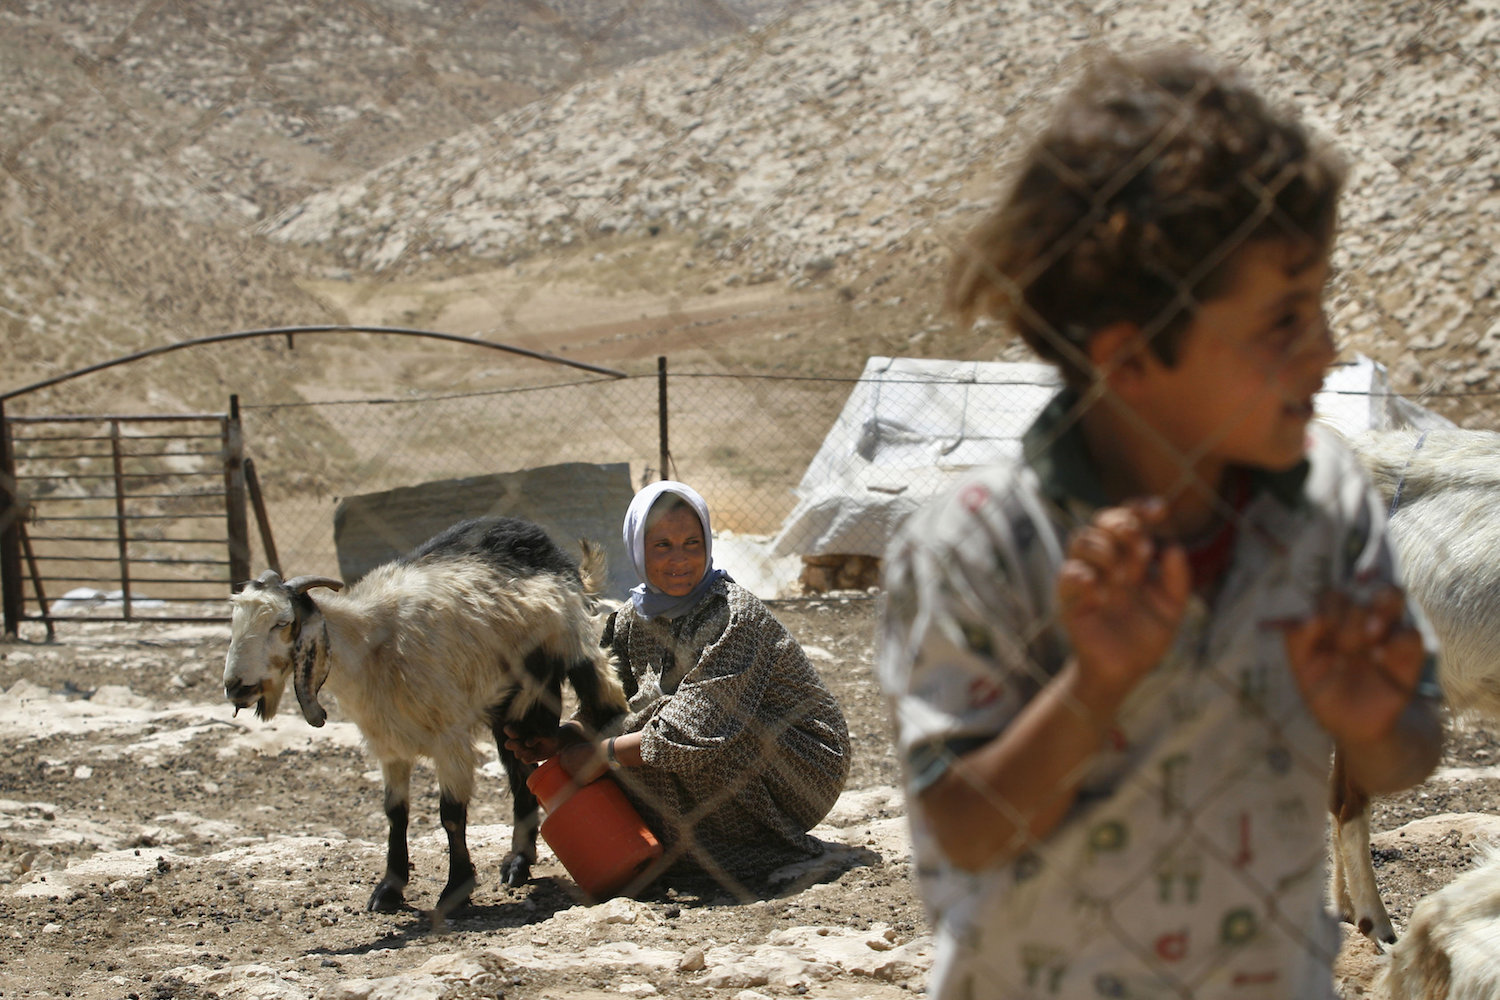 A Palestinian family in the south Hebron Hills, July 23, 2007. (Michal Fattal/Flash90)